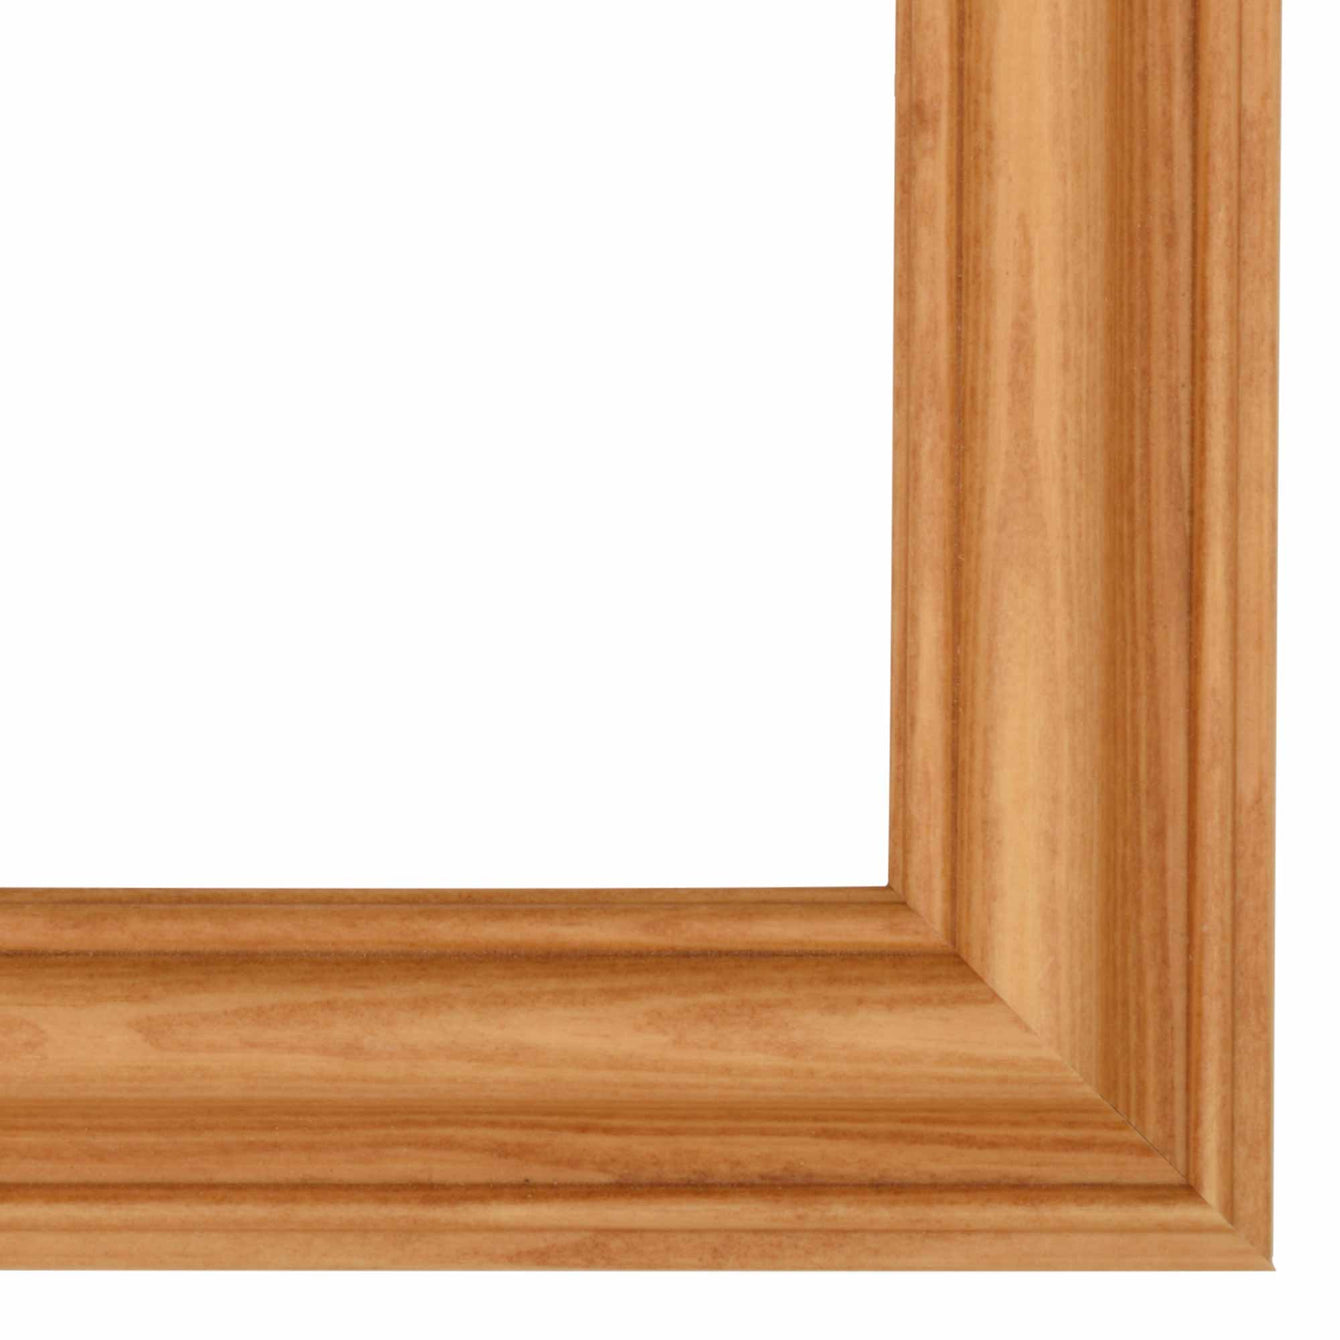 ElekTek Switch Surround Ovolo Frame Cover Finger Plate Pine Shades - Buy It Better Washed Blue Pine